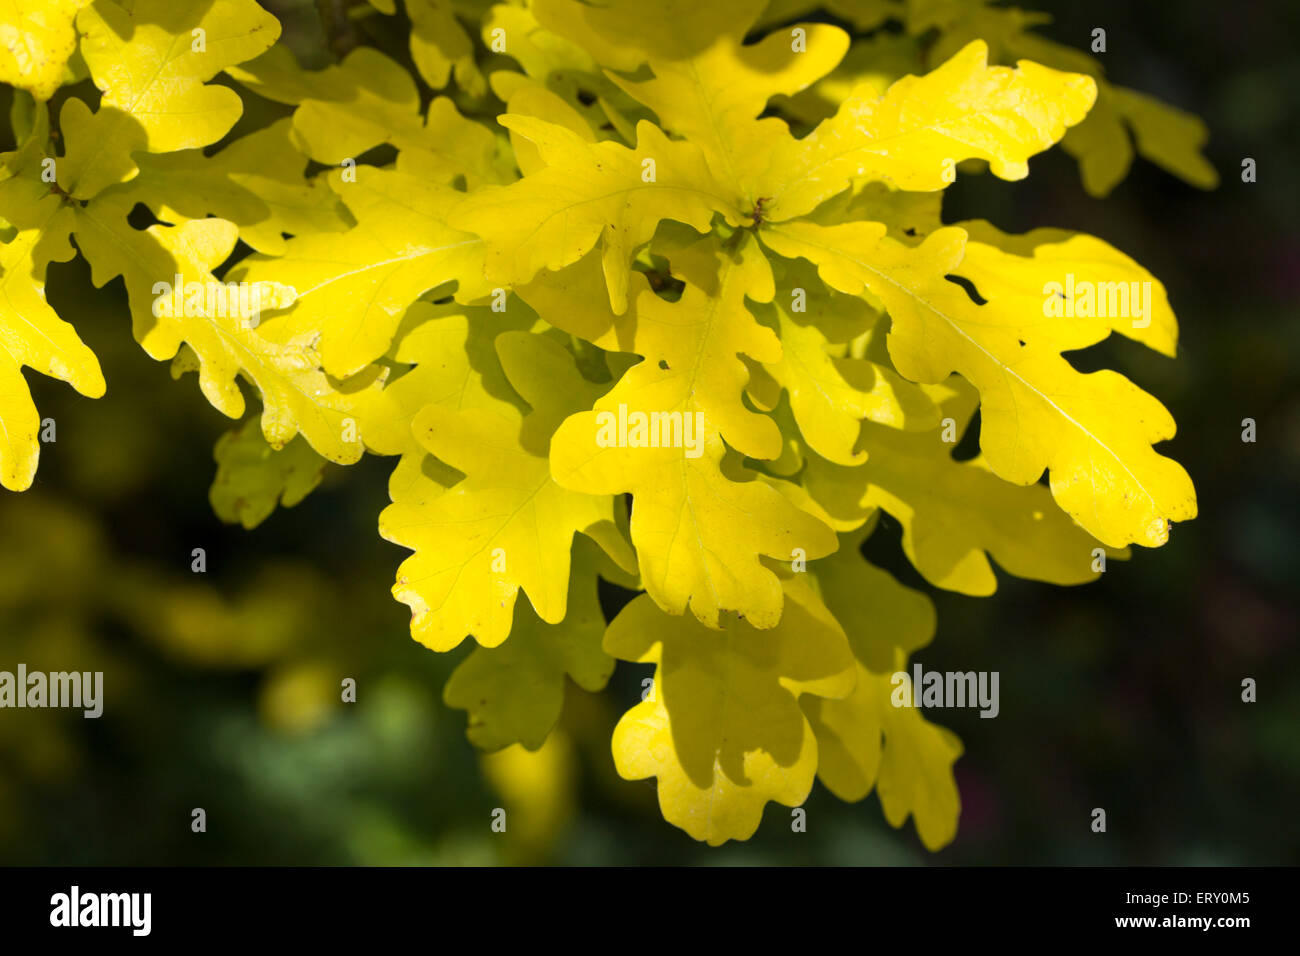 Golden foliage of the slow growing ornamental tree, Quercus robur 'Concordia' - Stock Image